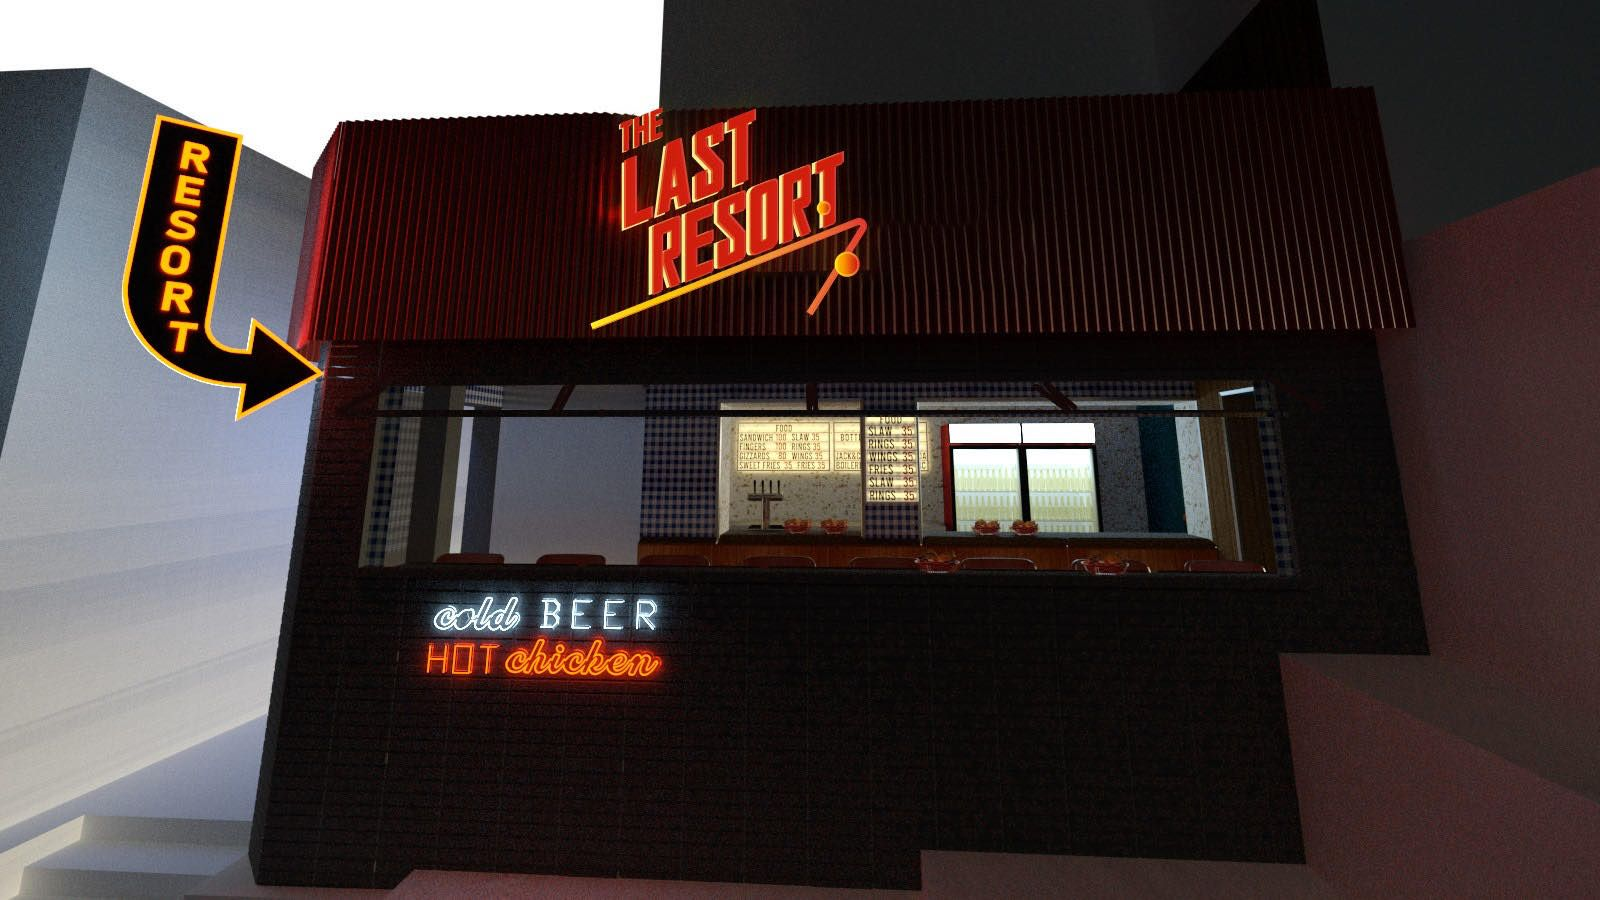 The Last Resort, A New Venue From Syed Asim Hussain, Is Set To Open Soon